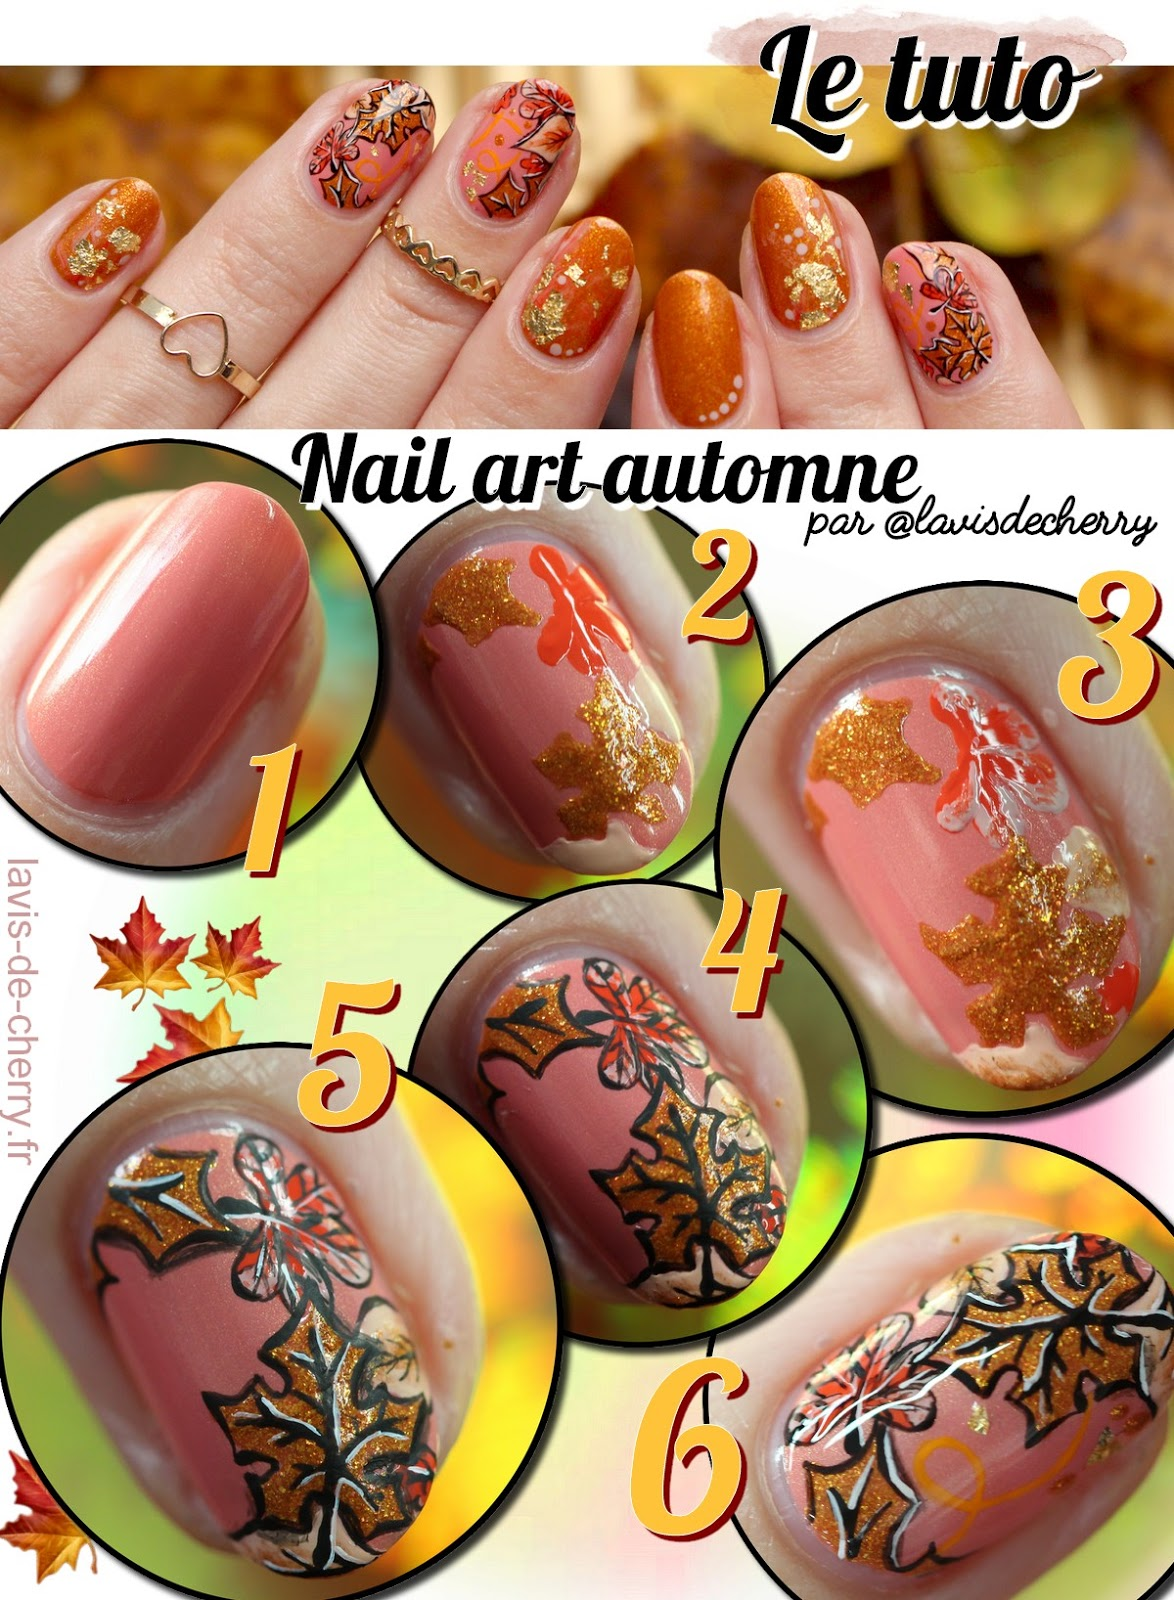 tuto-nail-art-automne-fall-feuille-or-feuilles-mortes